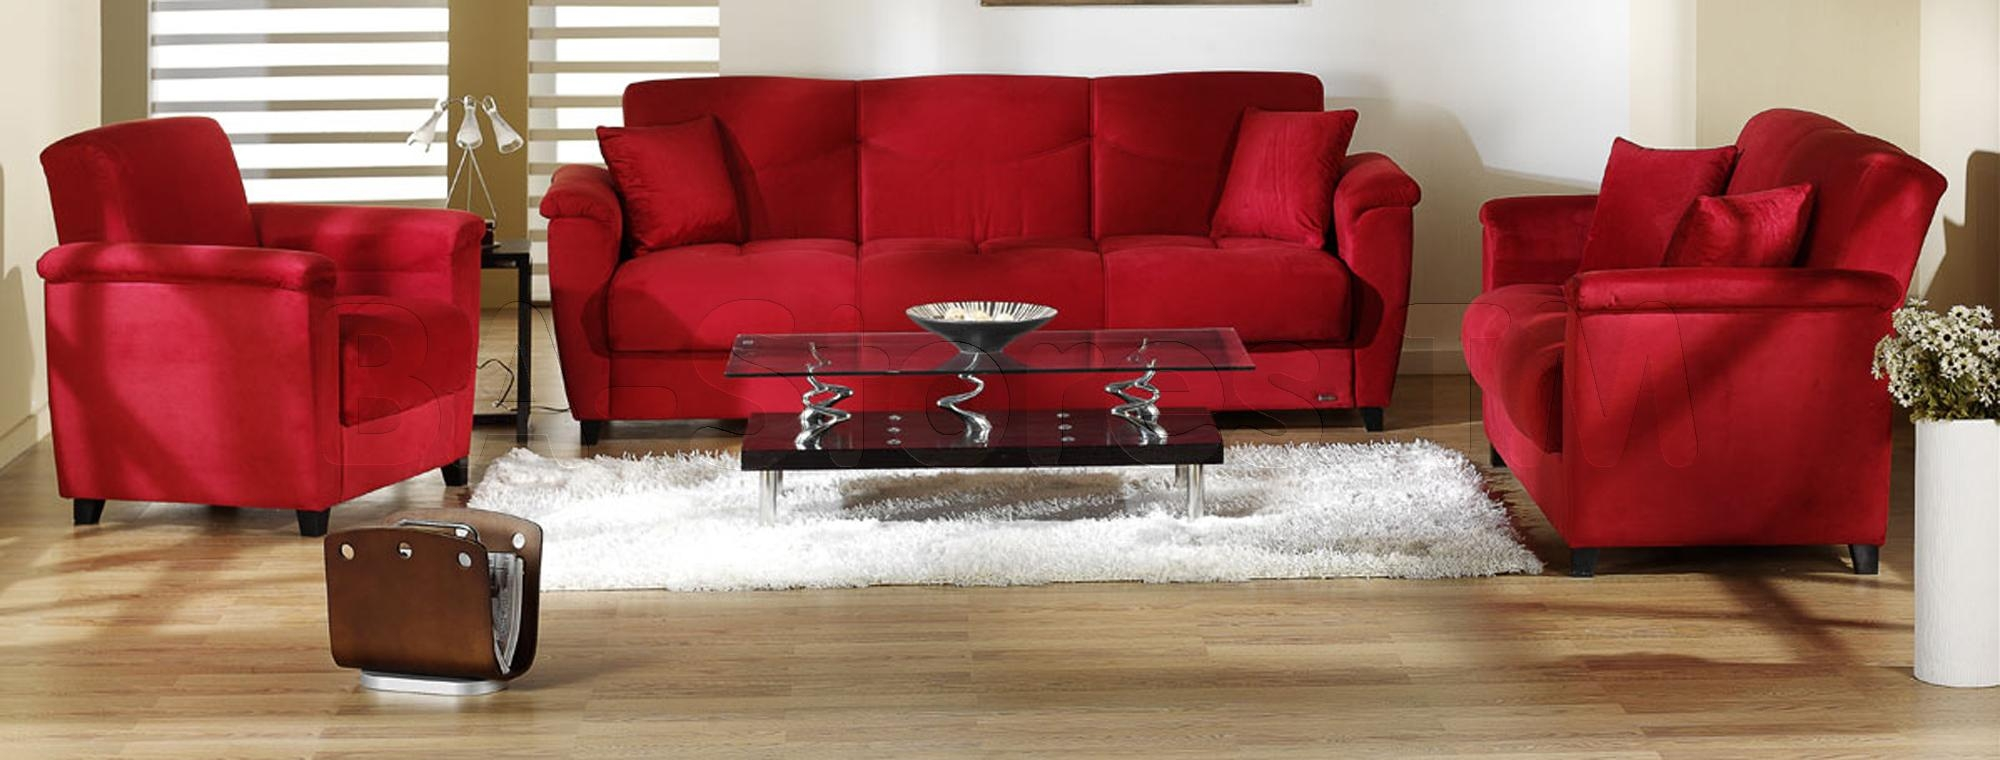 red living room chairs 20 top sofas and chairs sofa ideas 12154